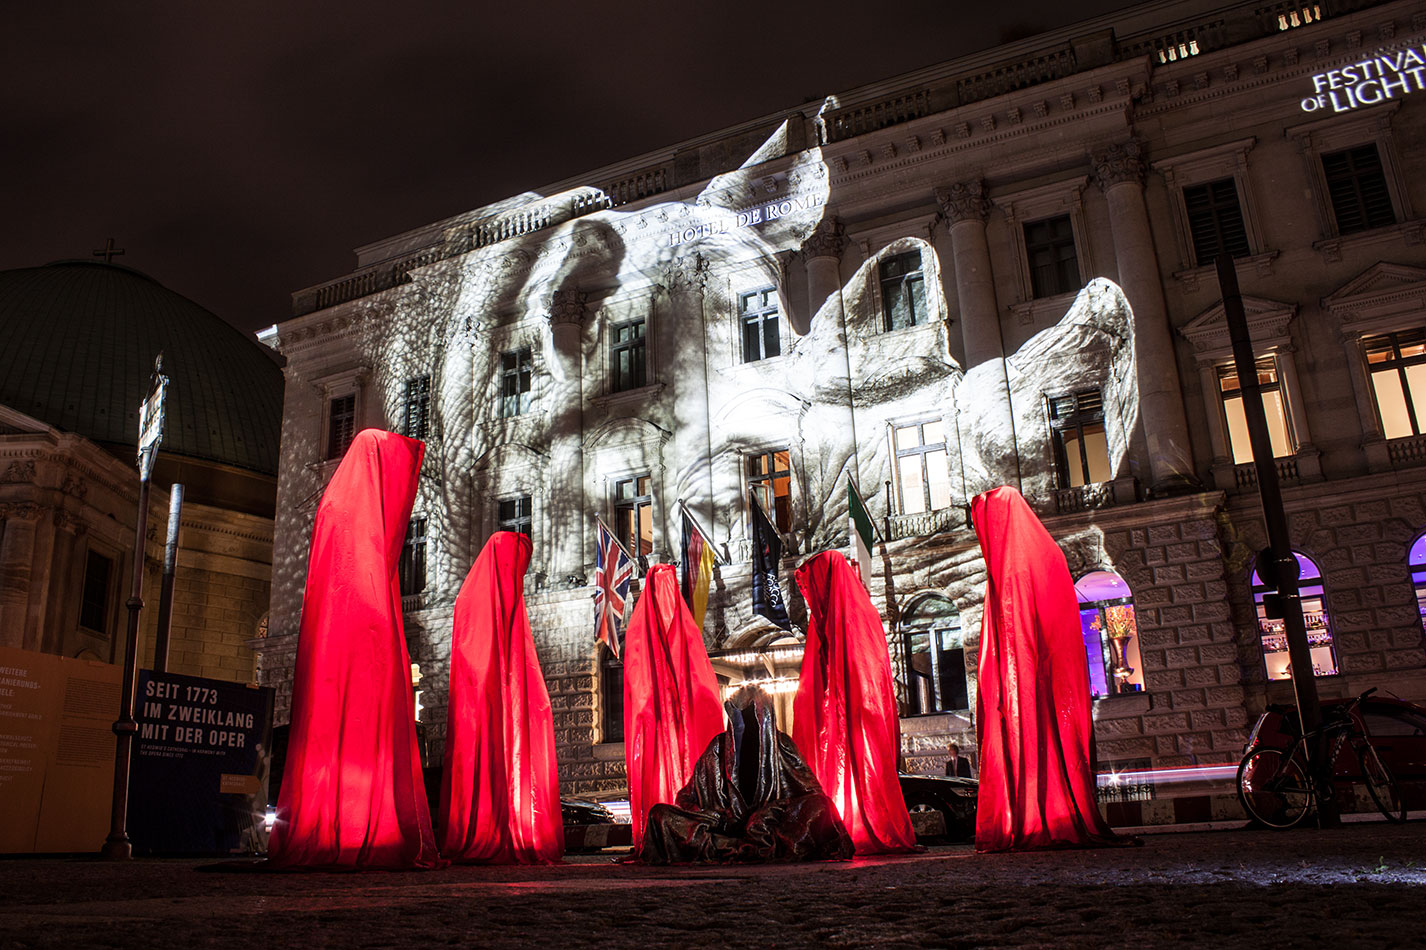 festival-of-lights-berlin-hotel-de-rome-light-art-show-exhibition-lumina-guardians-of-time-manfred-kili-kielnhofer-contemporary-arts-design-sculpture-3387